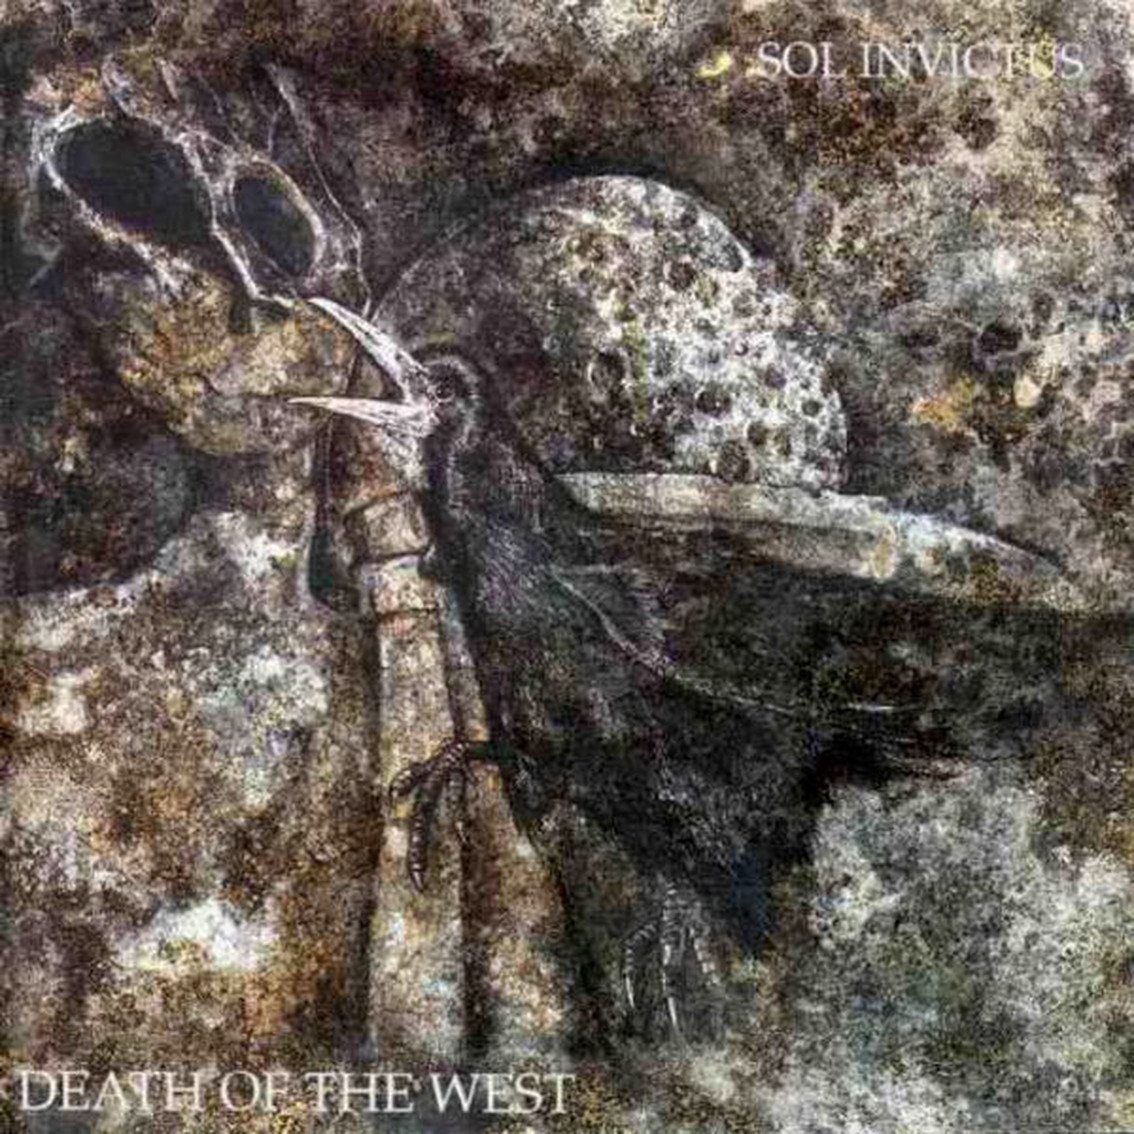 Sol Invictus gets classic 1994 album'Death of the west' re-released on vinyl